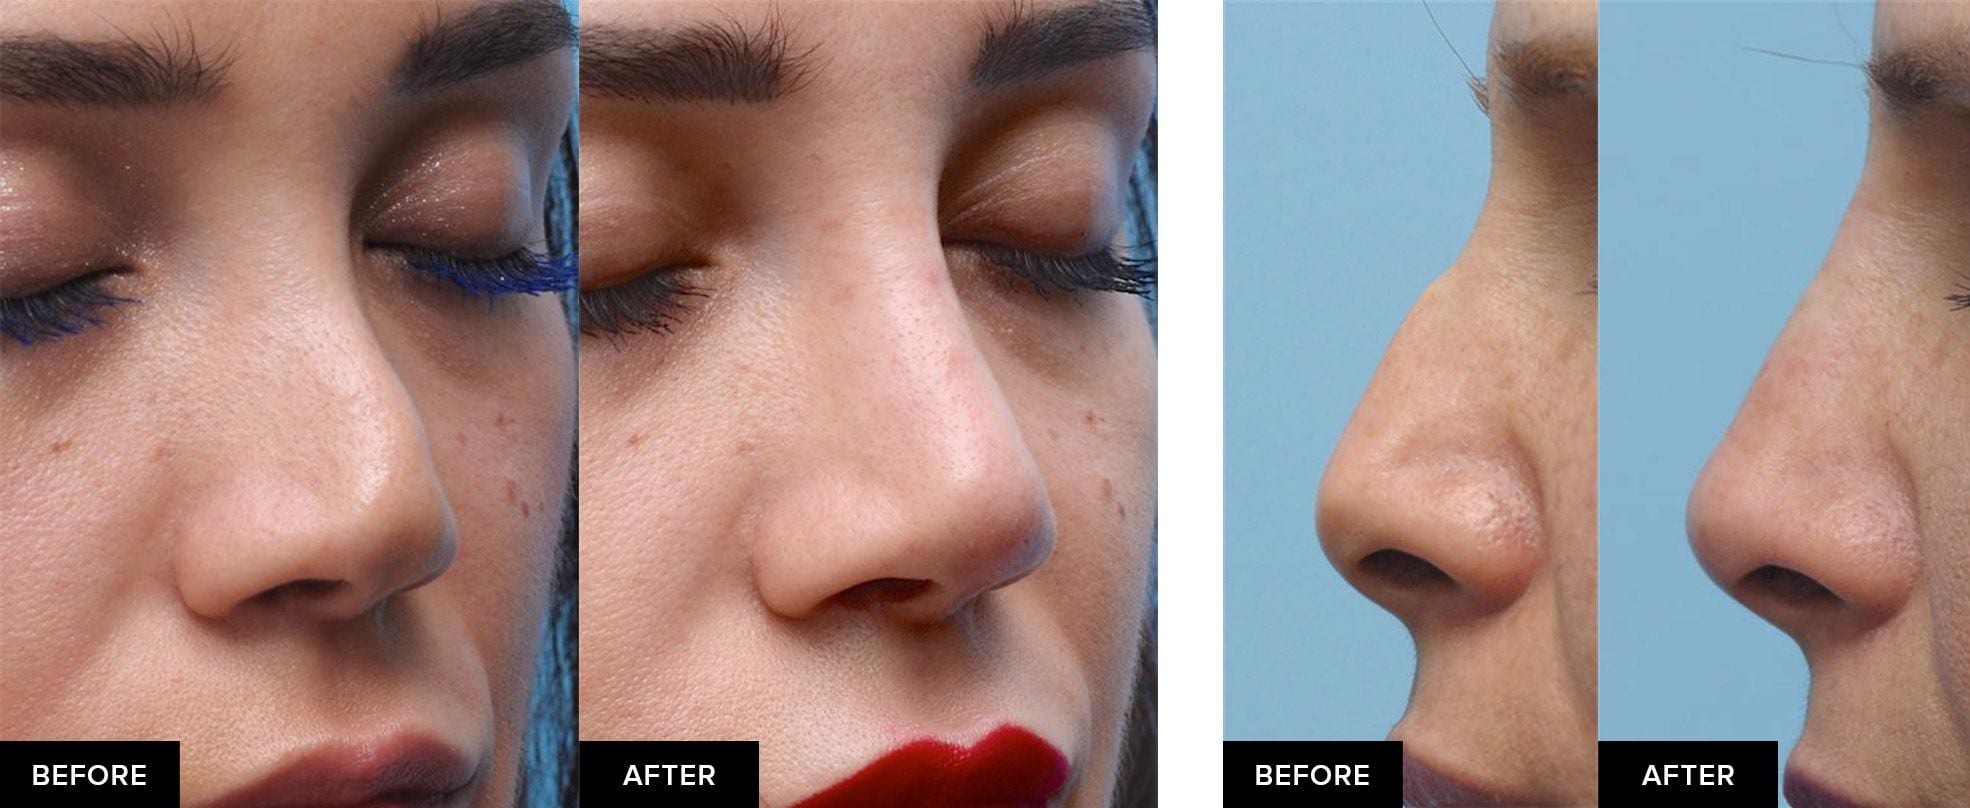 Nonsurgical rhinoplasty to smooth a nasal hump